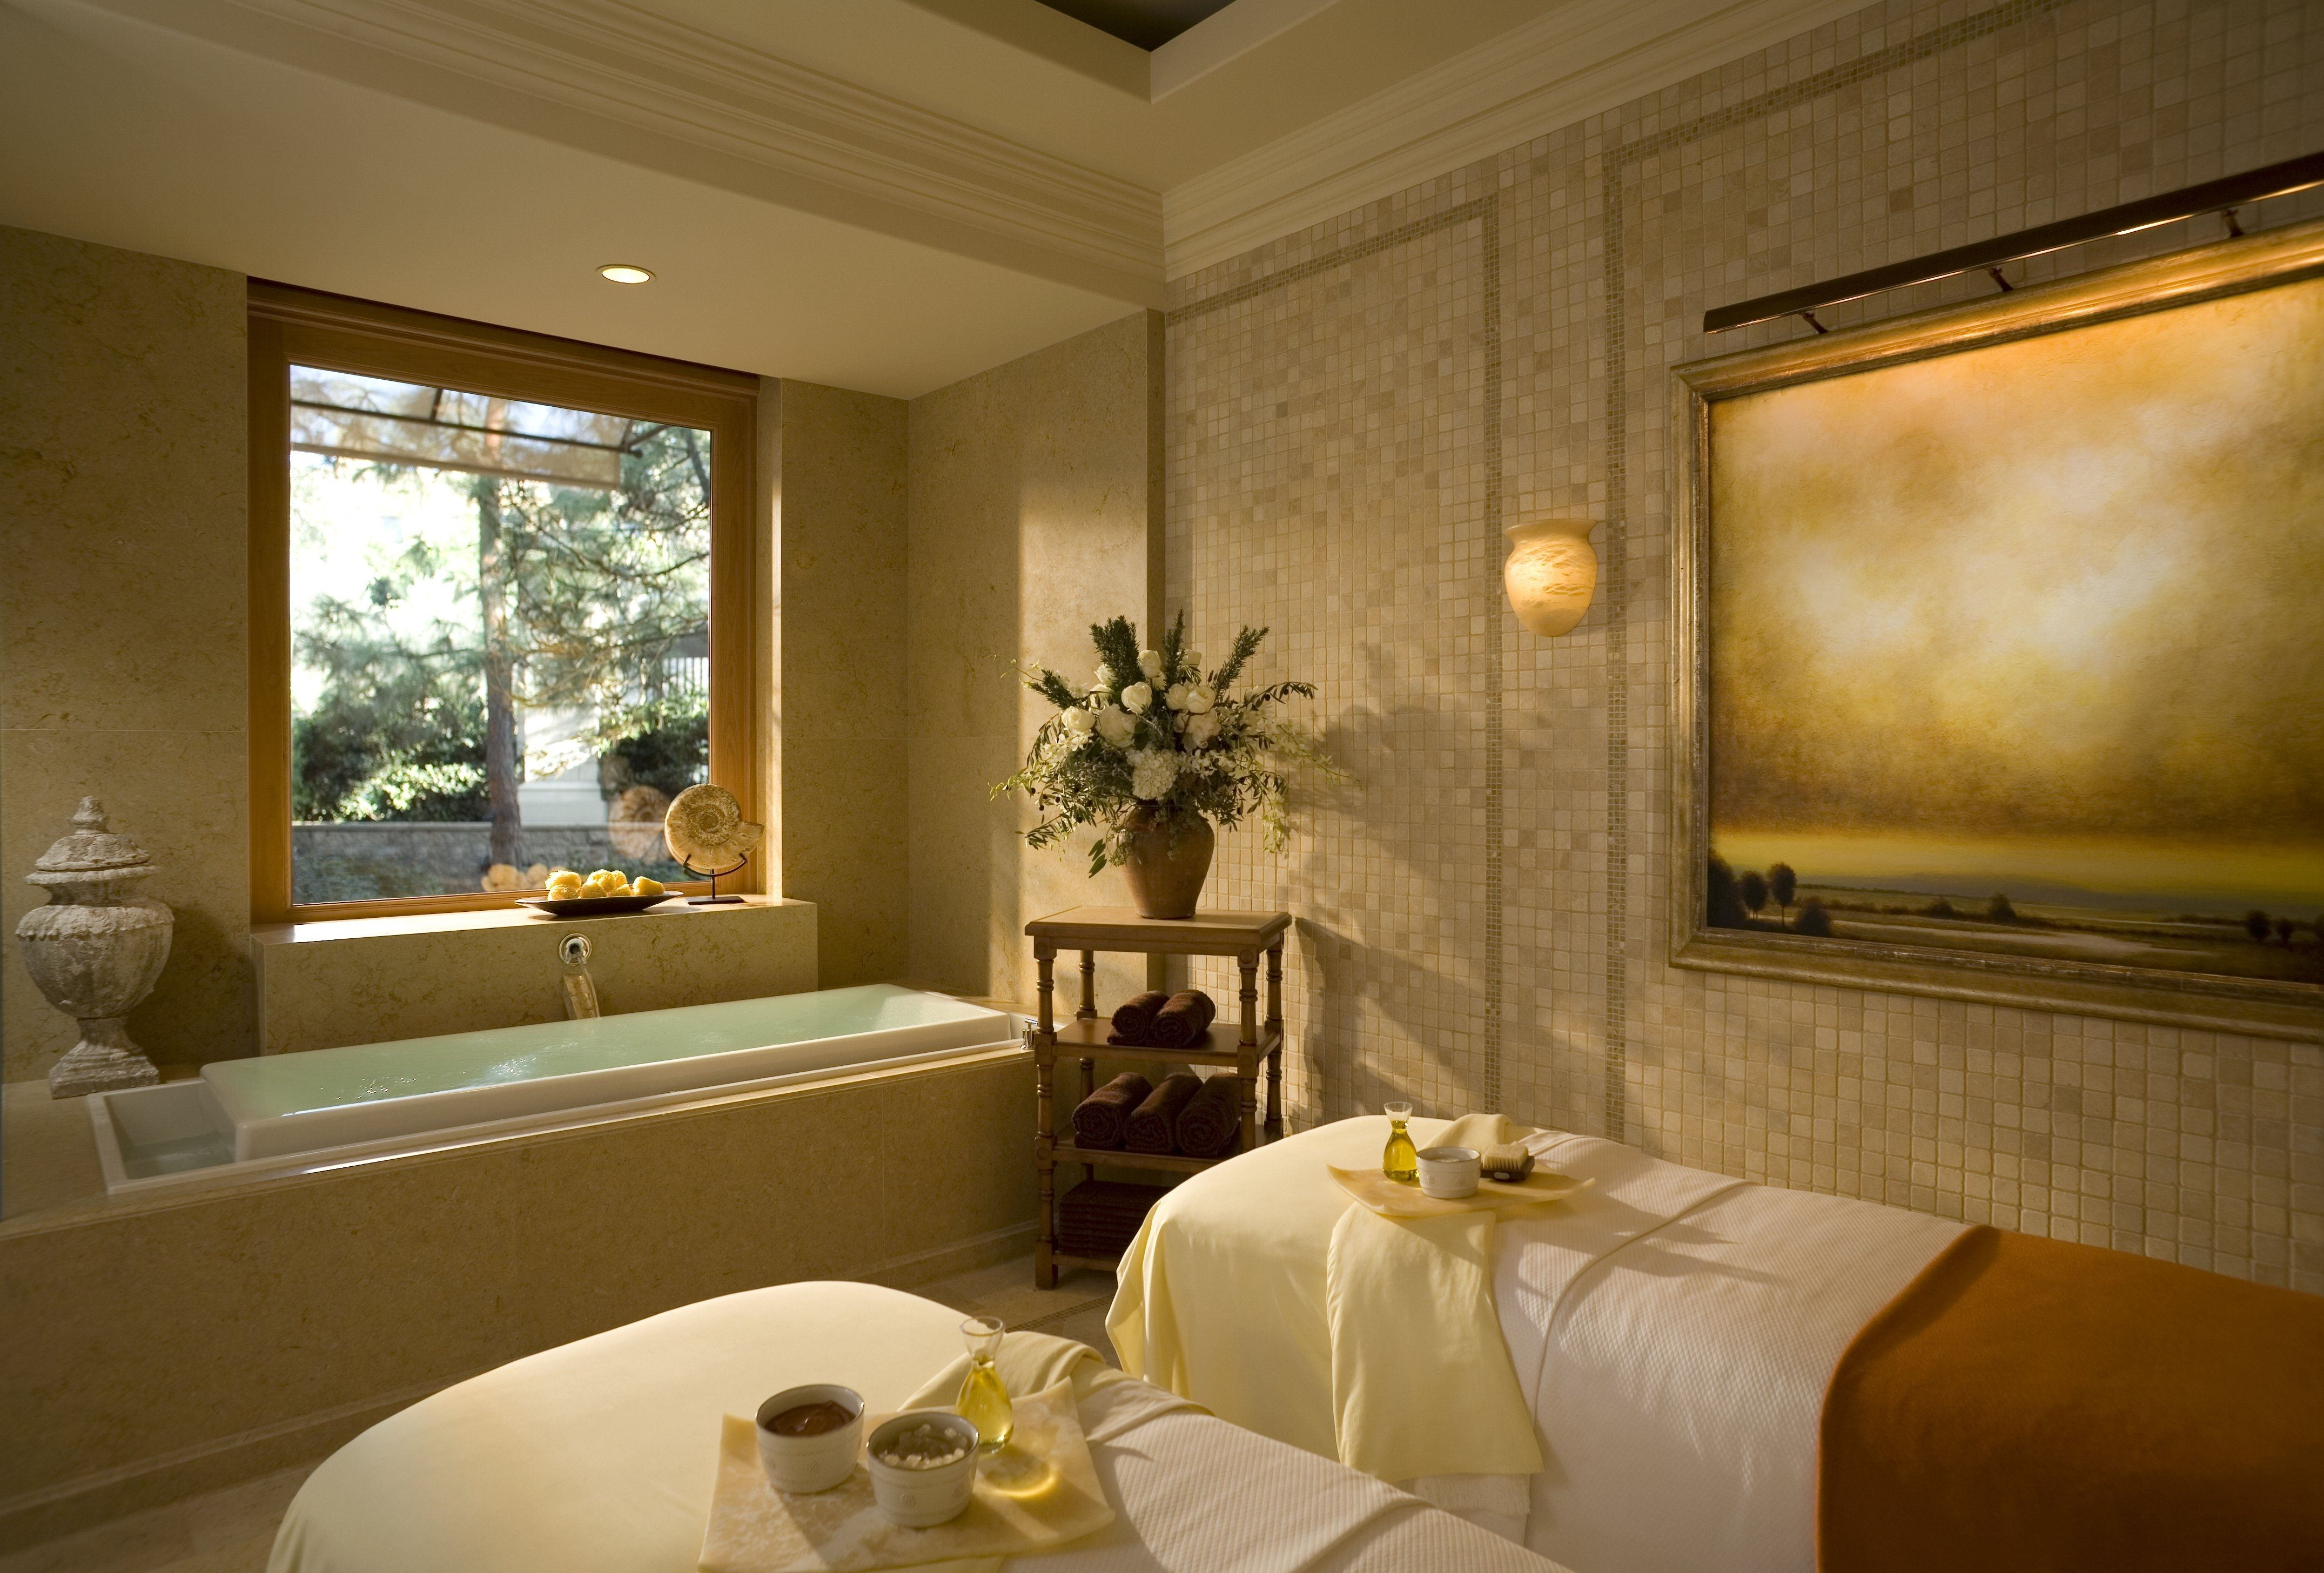 Therapy Room Design Ideas Part - 18: Explore Spa Treatment Room, Spa Treatments, And More!